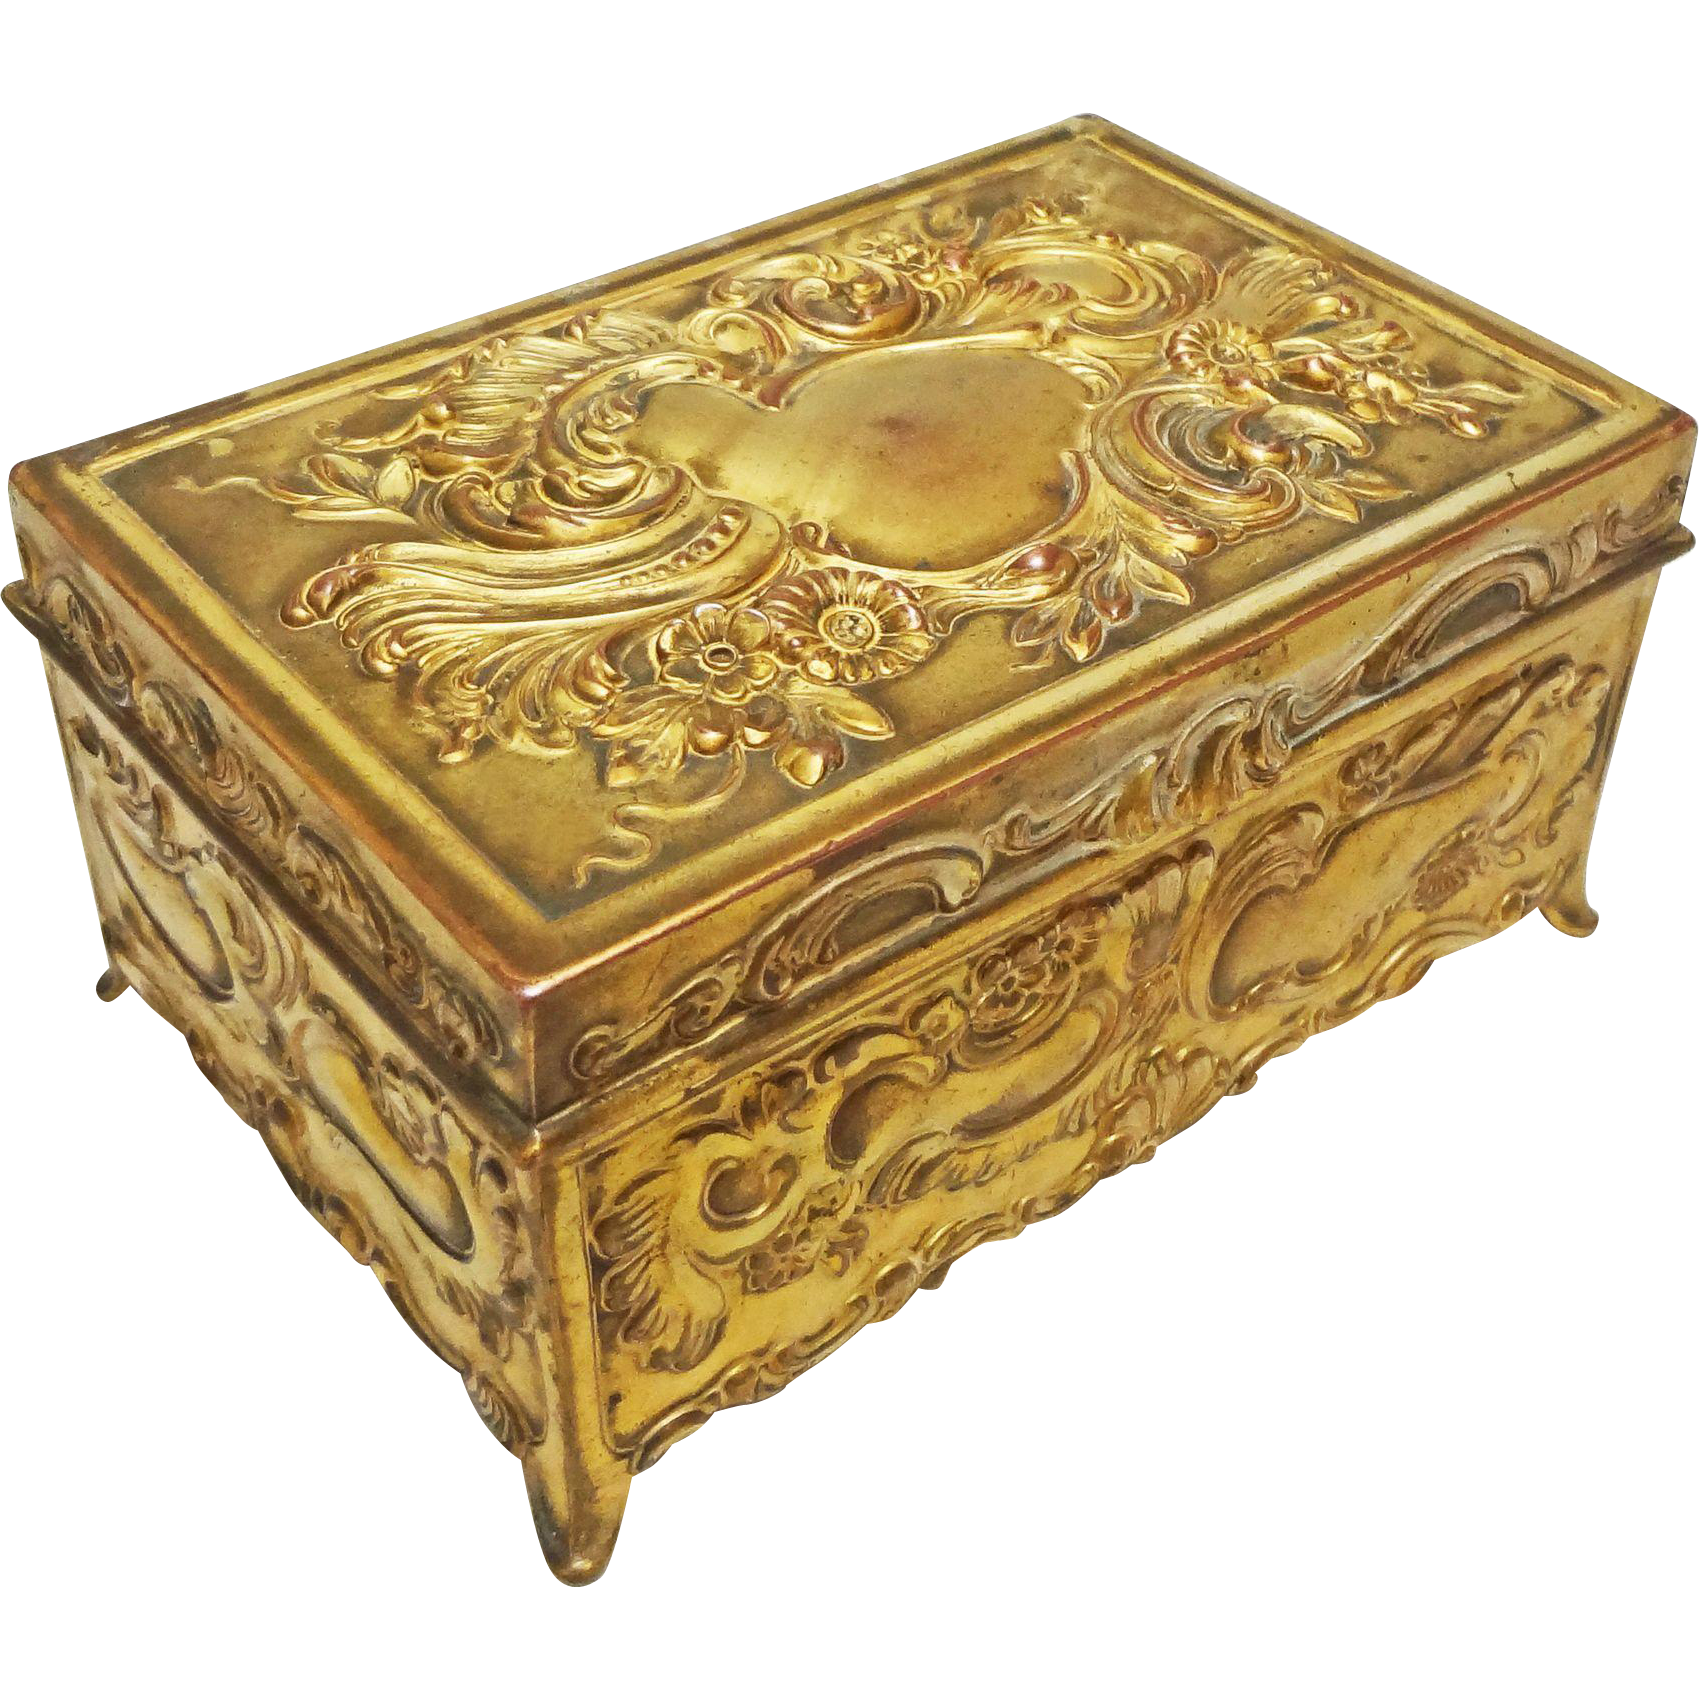 Jennings Brothers Rectangular Gilt Bronze Lidded Box / Casket JB 752 - c. 1900's, USA